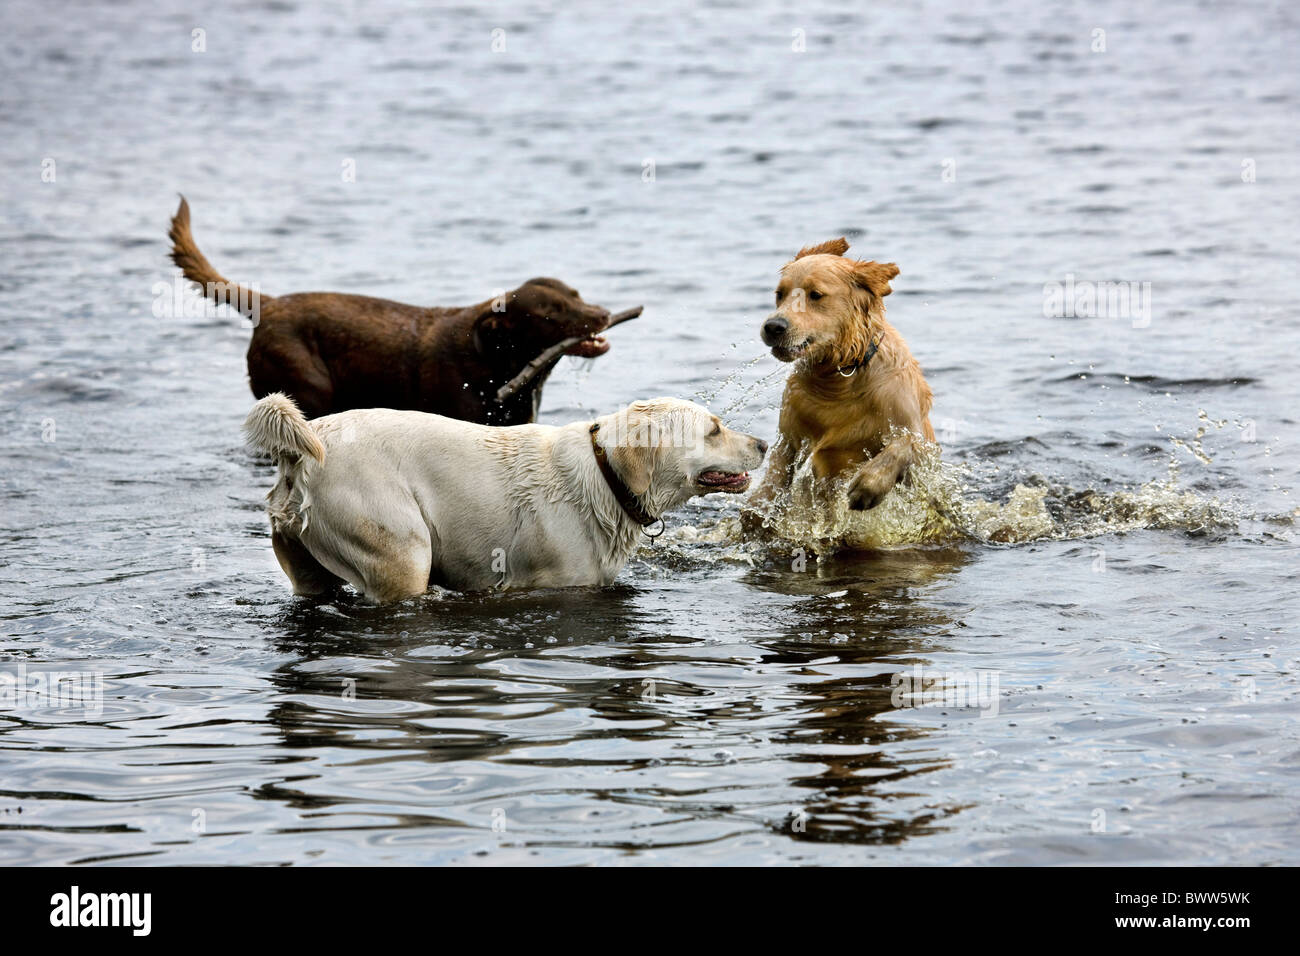 Golden retrievers (Canis lupus familiaris) playing in water - Stock Image